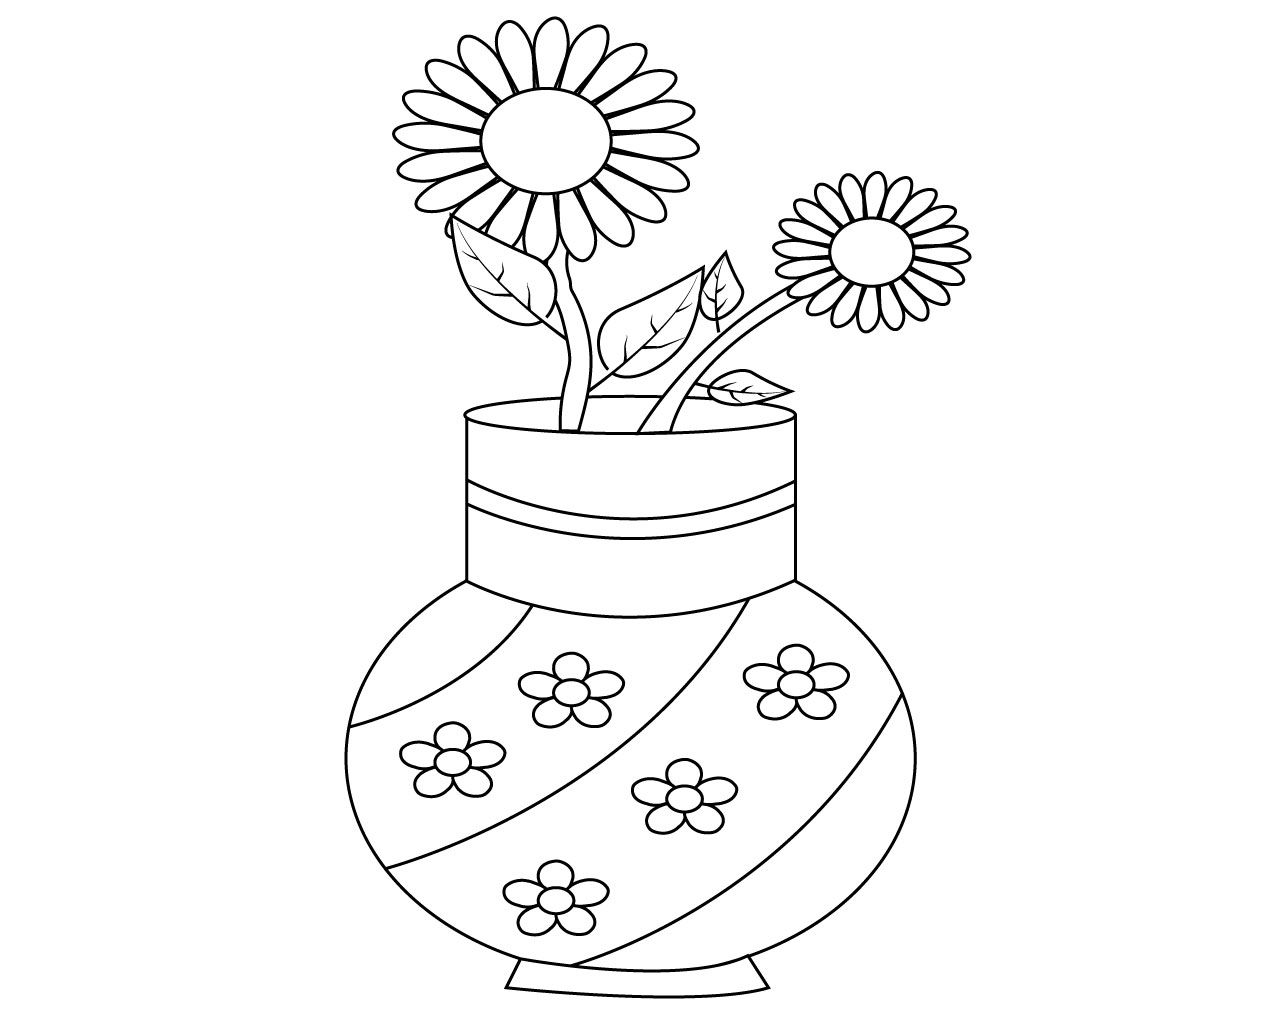 12+ Printable rose mandala coloring pages ideas in 2021